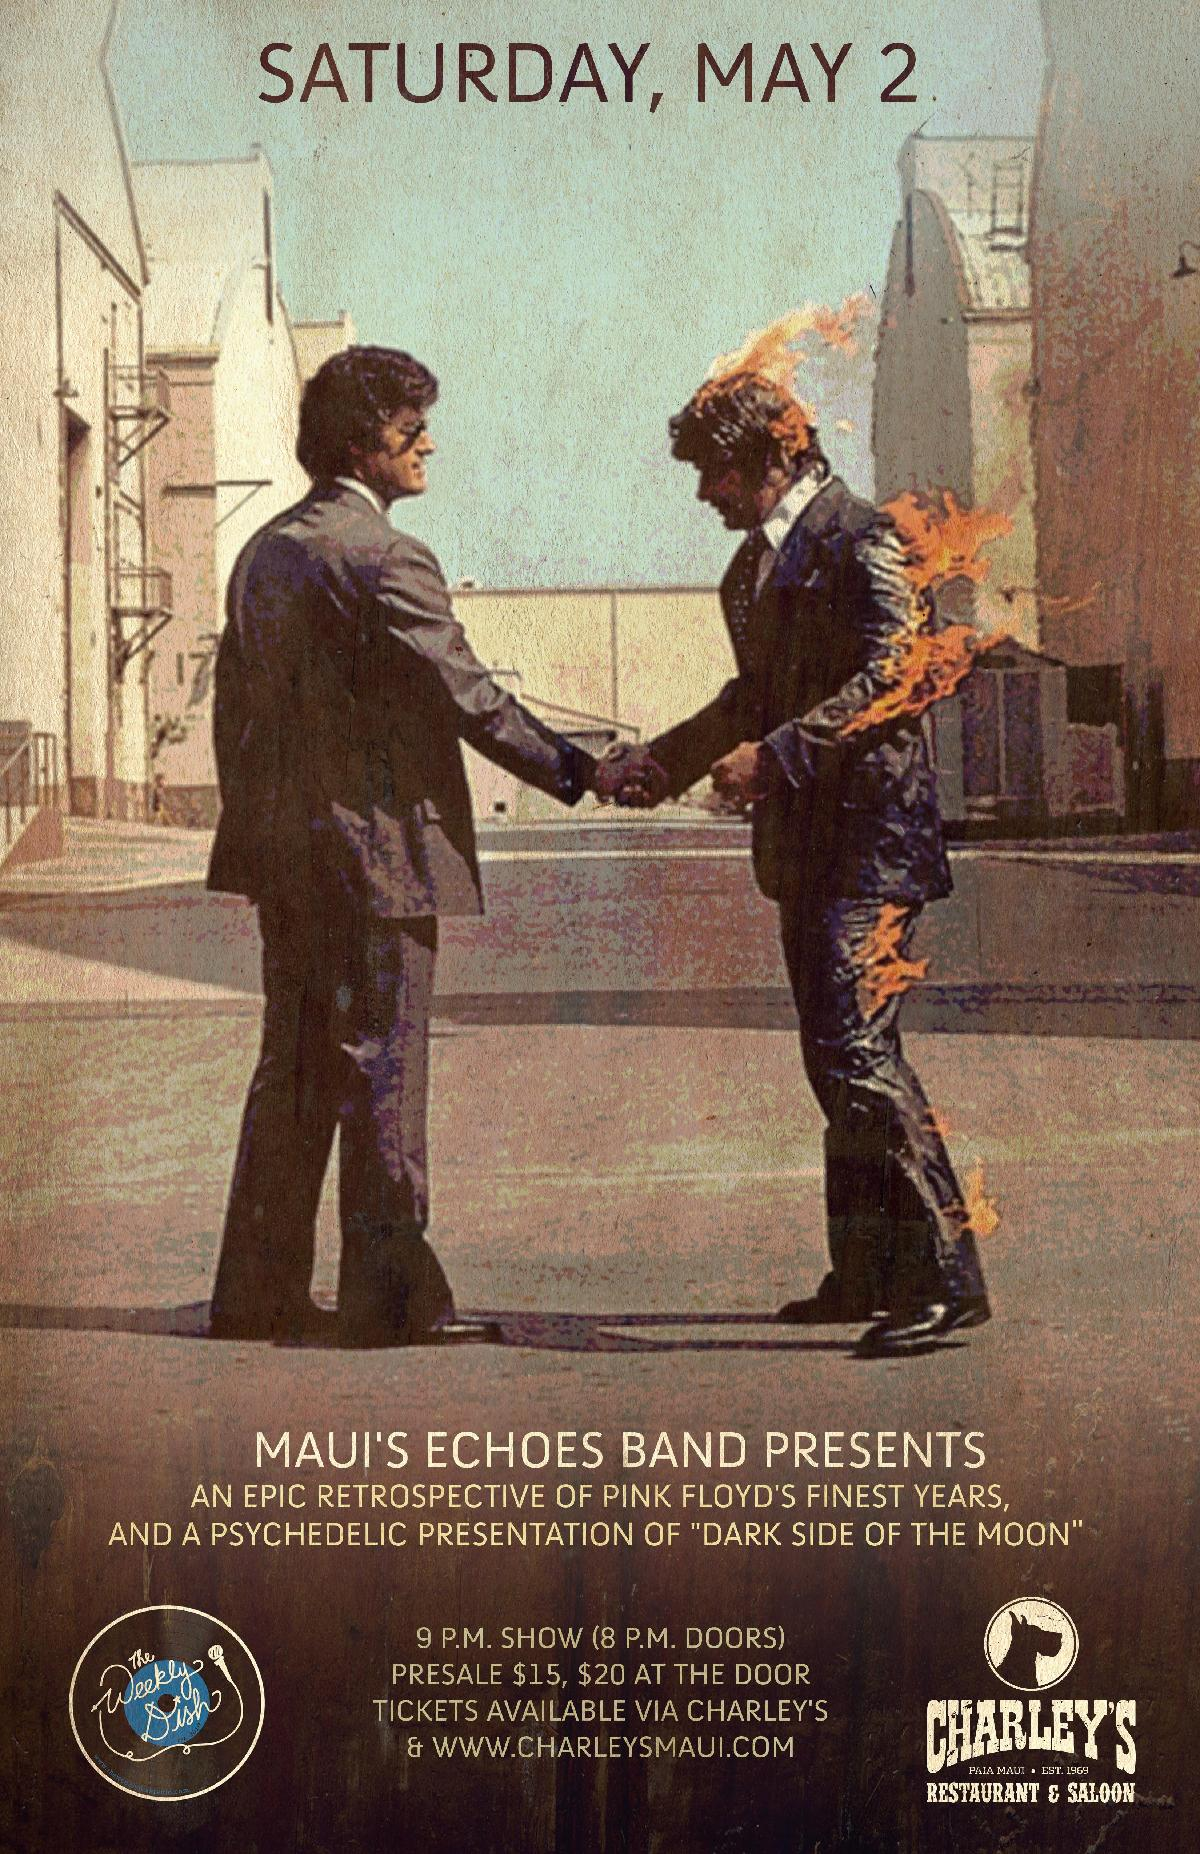 Charleys Restaurant and Saloon :: Maui's Echoes Band